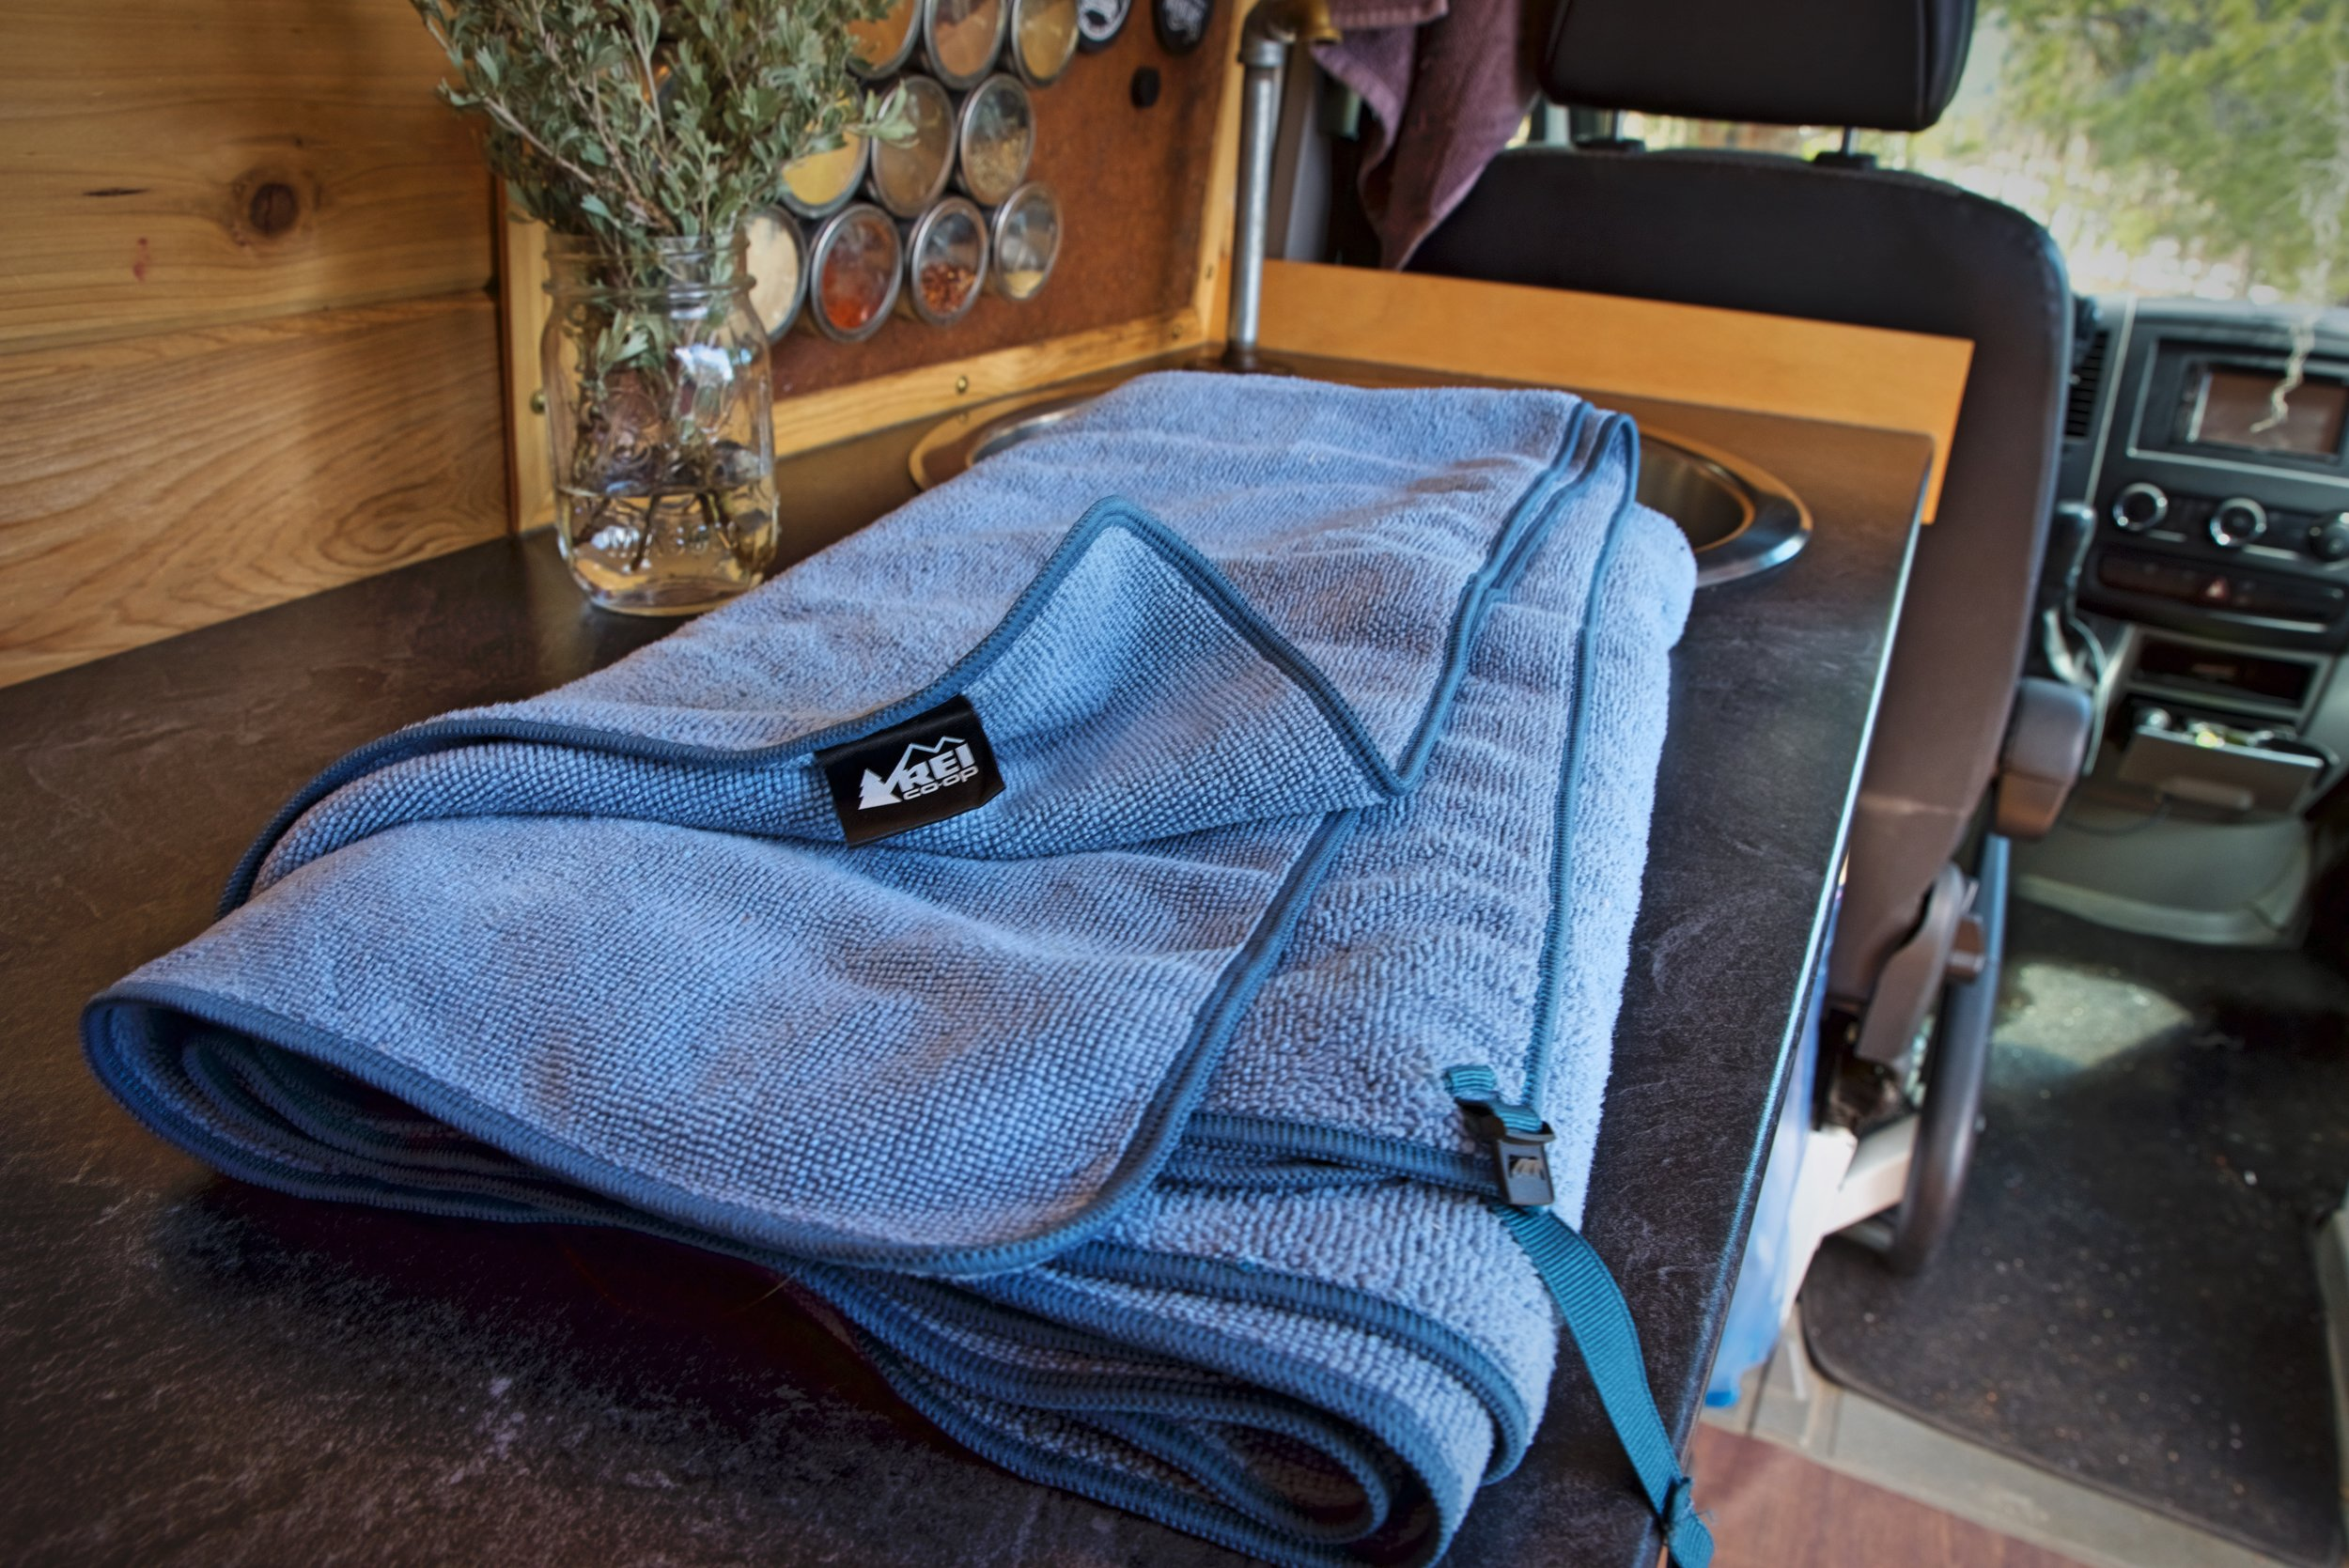 Having a  quick dry towel  in your van is exactly what you need for showering while living on the road.